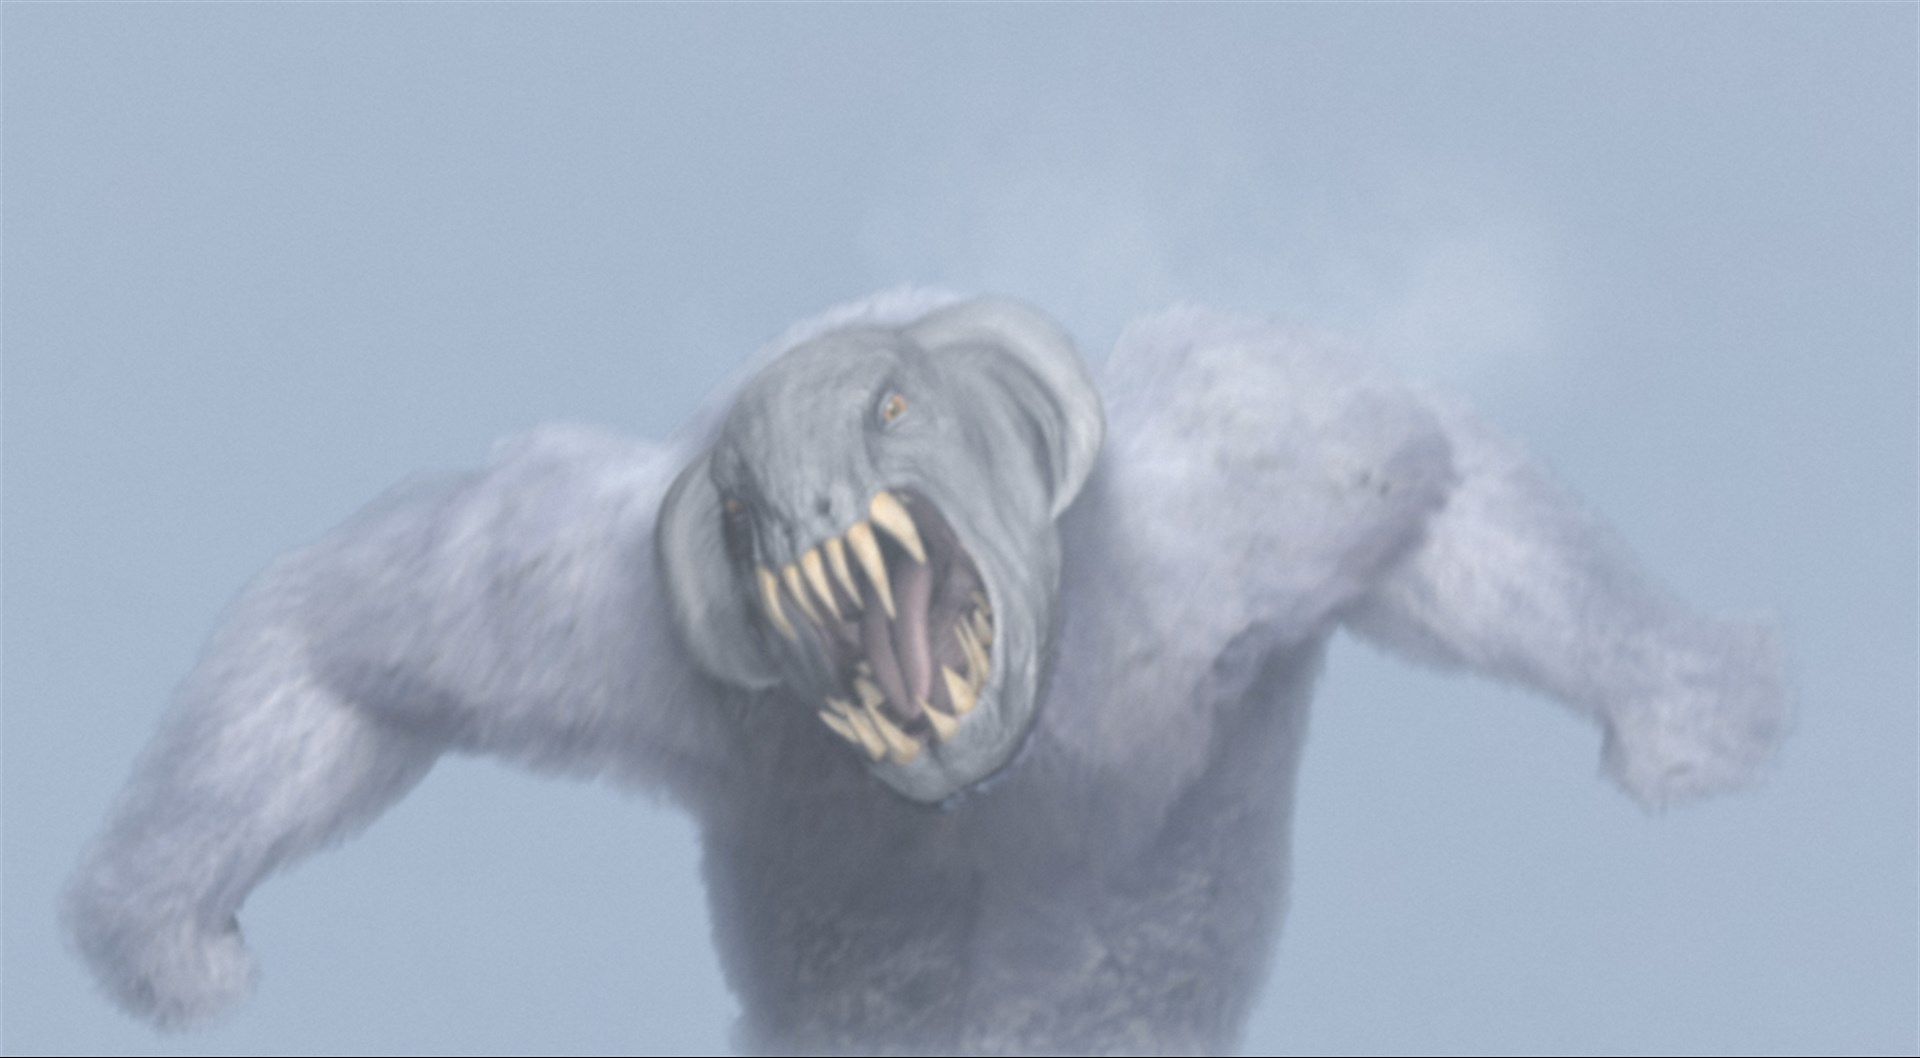 One of the Yeren/Yeti monsters in Rage of the Yeti (2011)